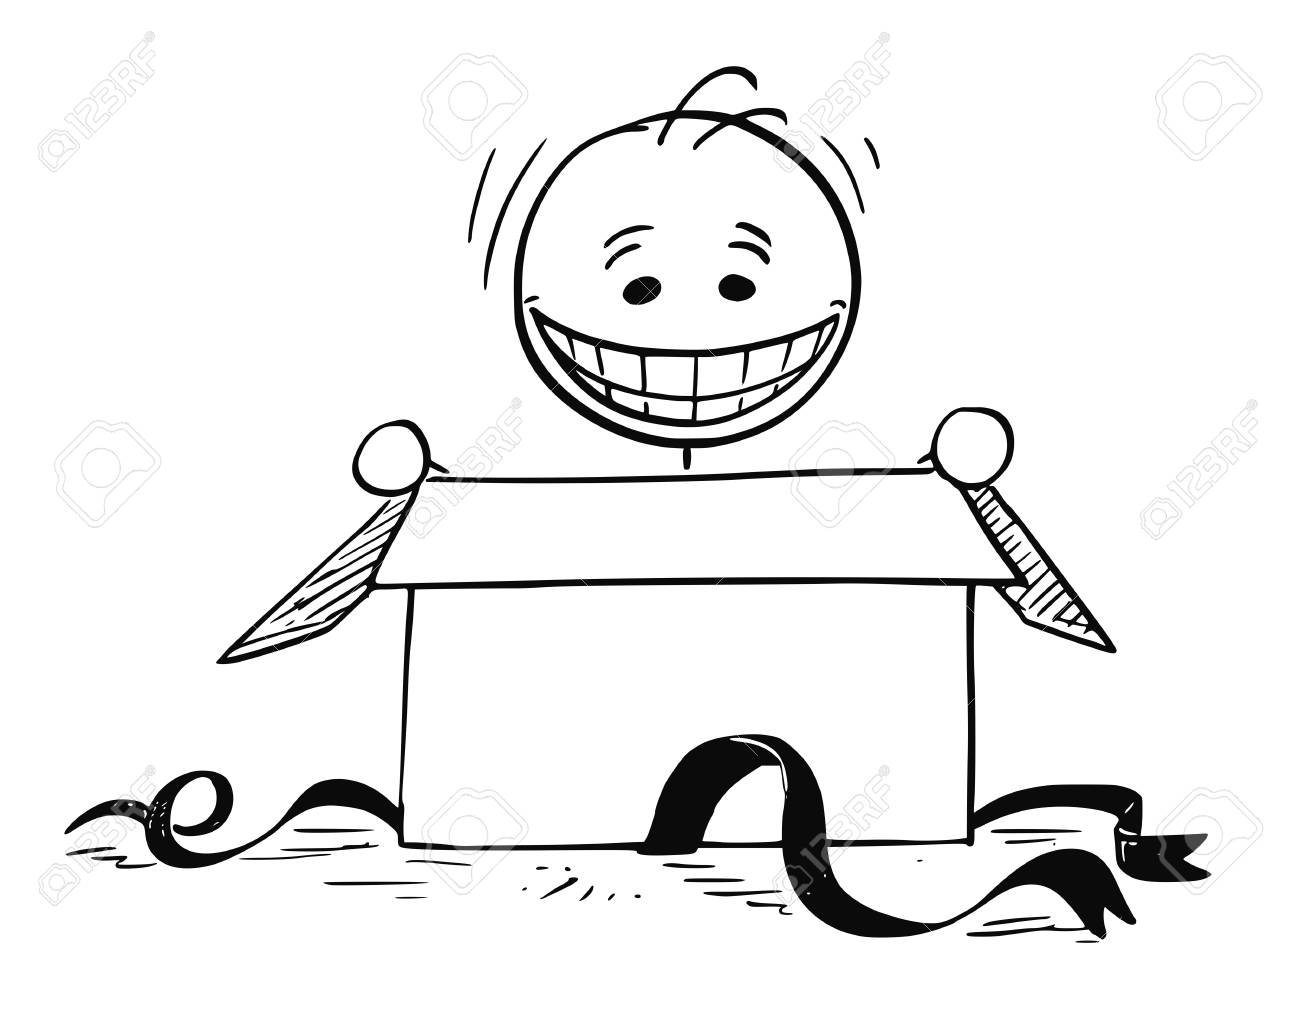 Cartoon Stick Man Drawing Illustration Of Happy Smiling Man Looking